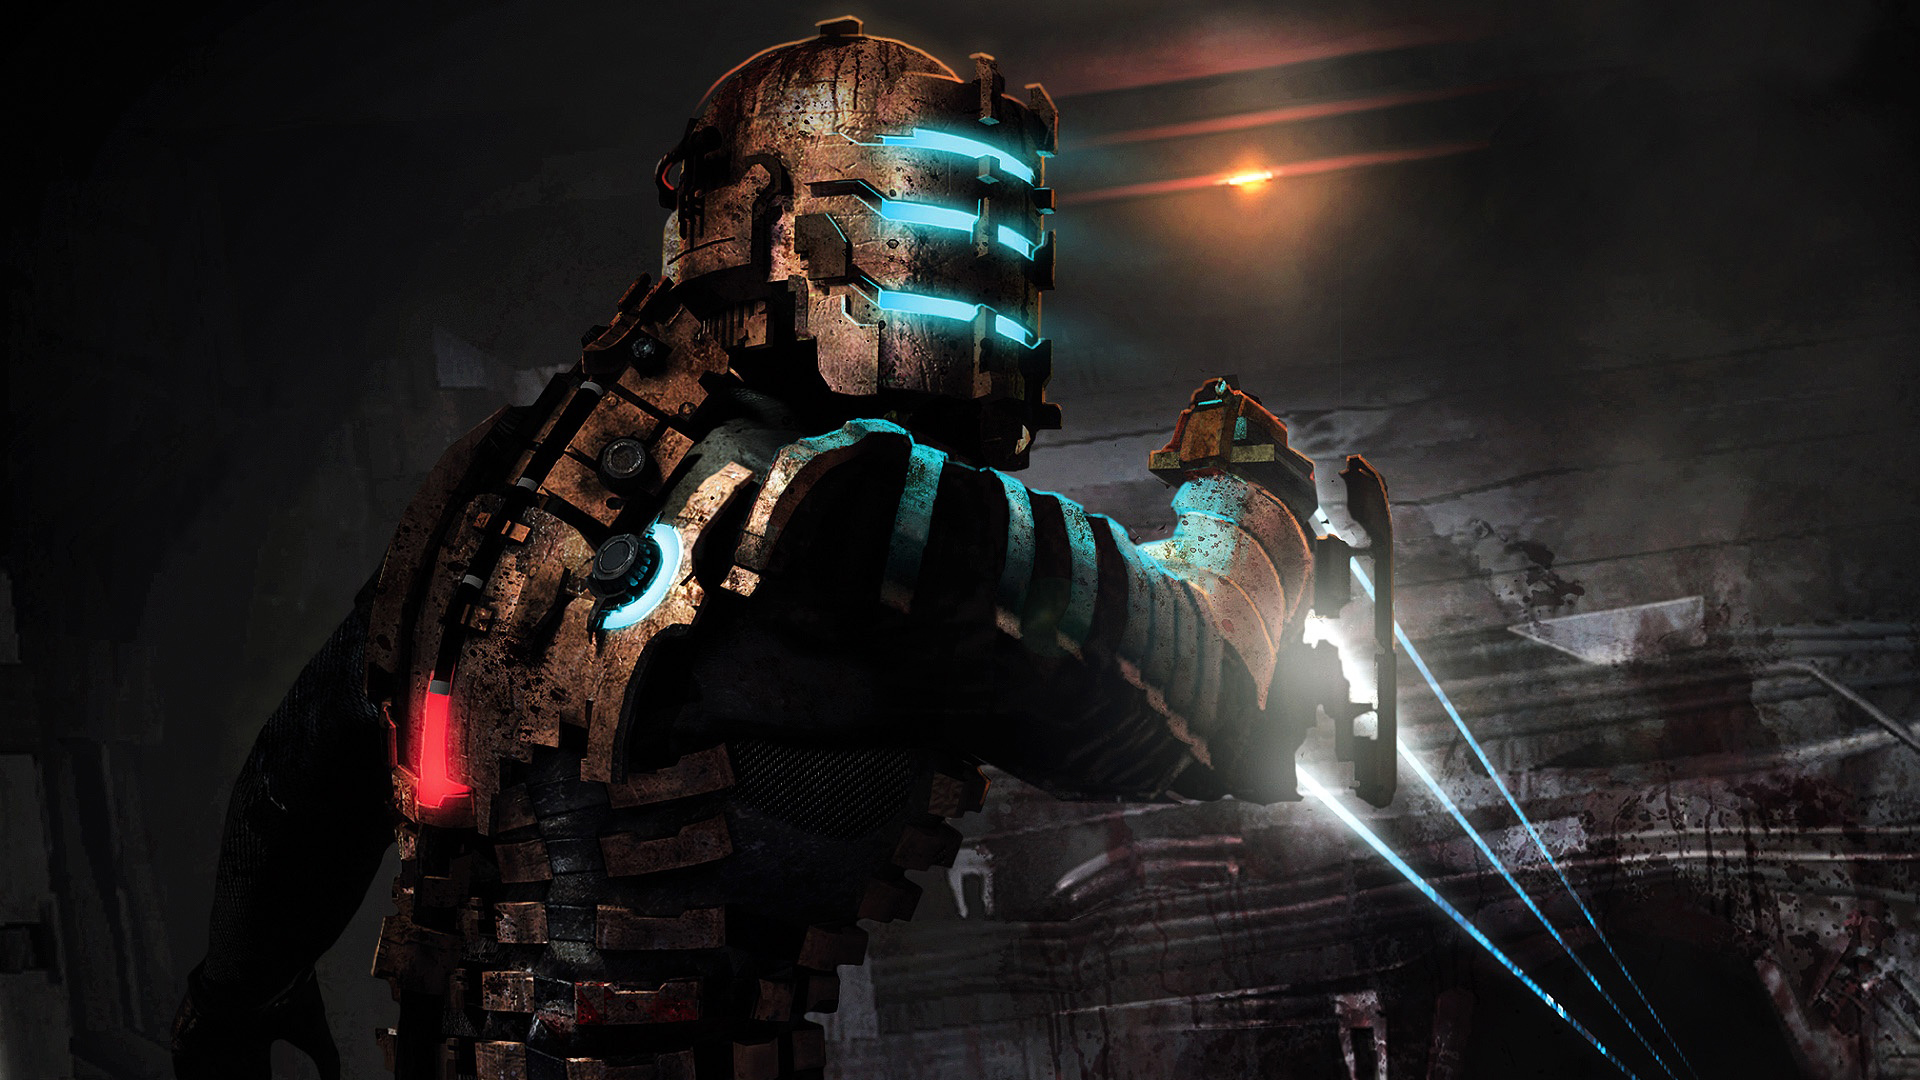 dead space 3 wallpaper A